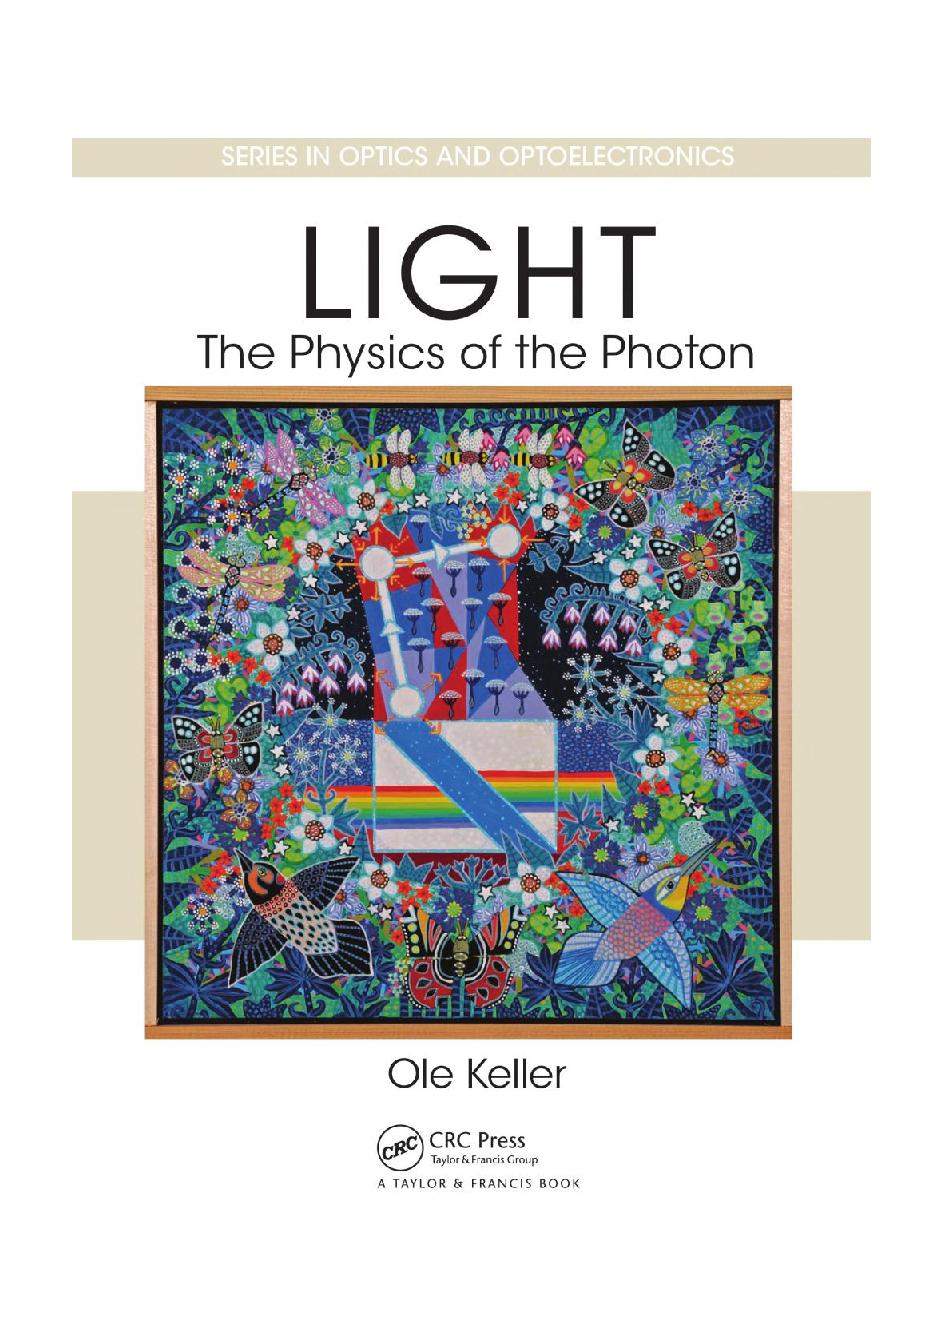 Light - The Physics of the Photon